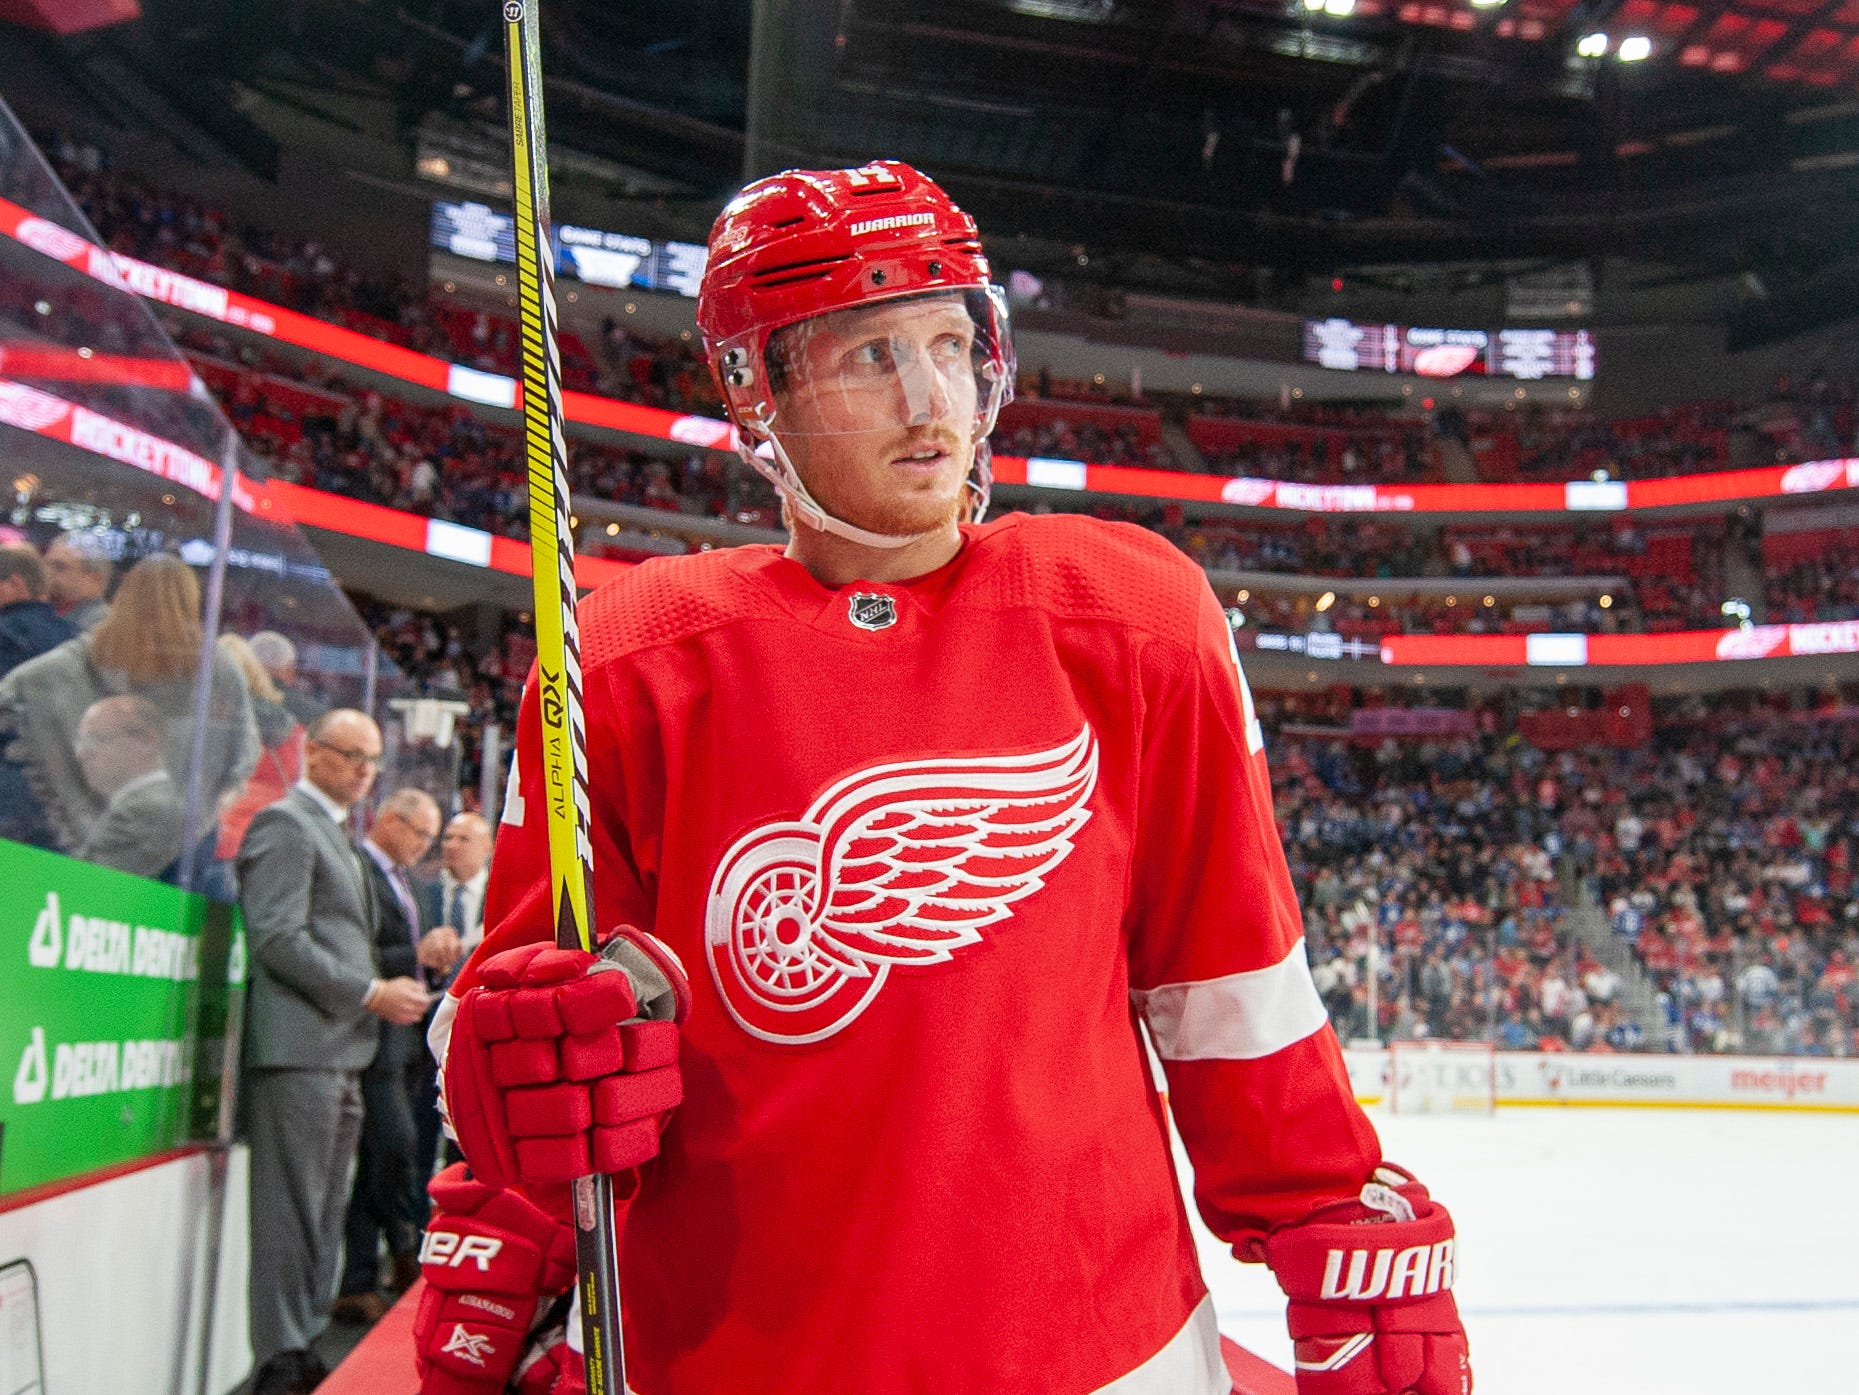 Detroit center Gustav Nyquist            Photos are of the Detroit Red Wings vs. the Toronto Maple Leafs, at Little Caesars Arena, in Detroit, October 11, 2018.  (David Guralnick / The Detroit News)